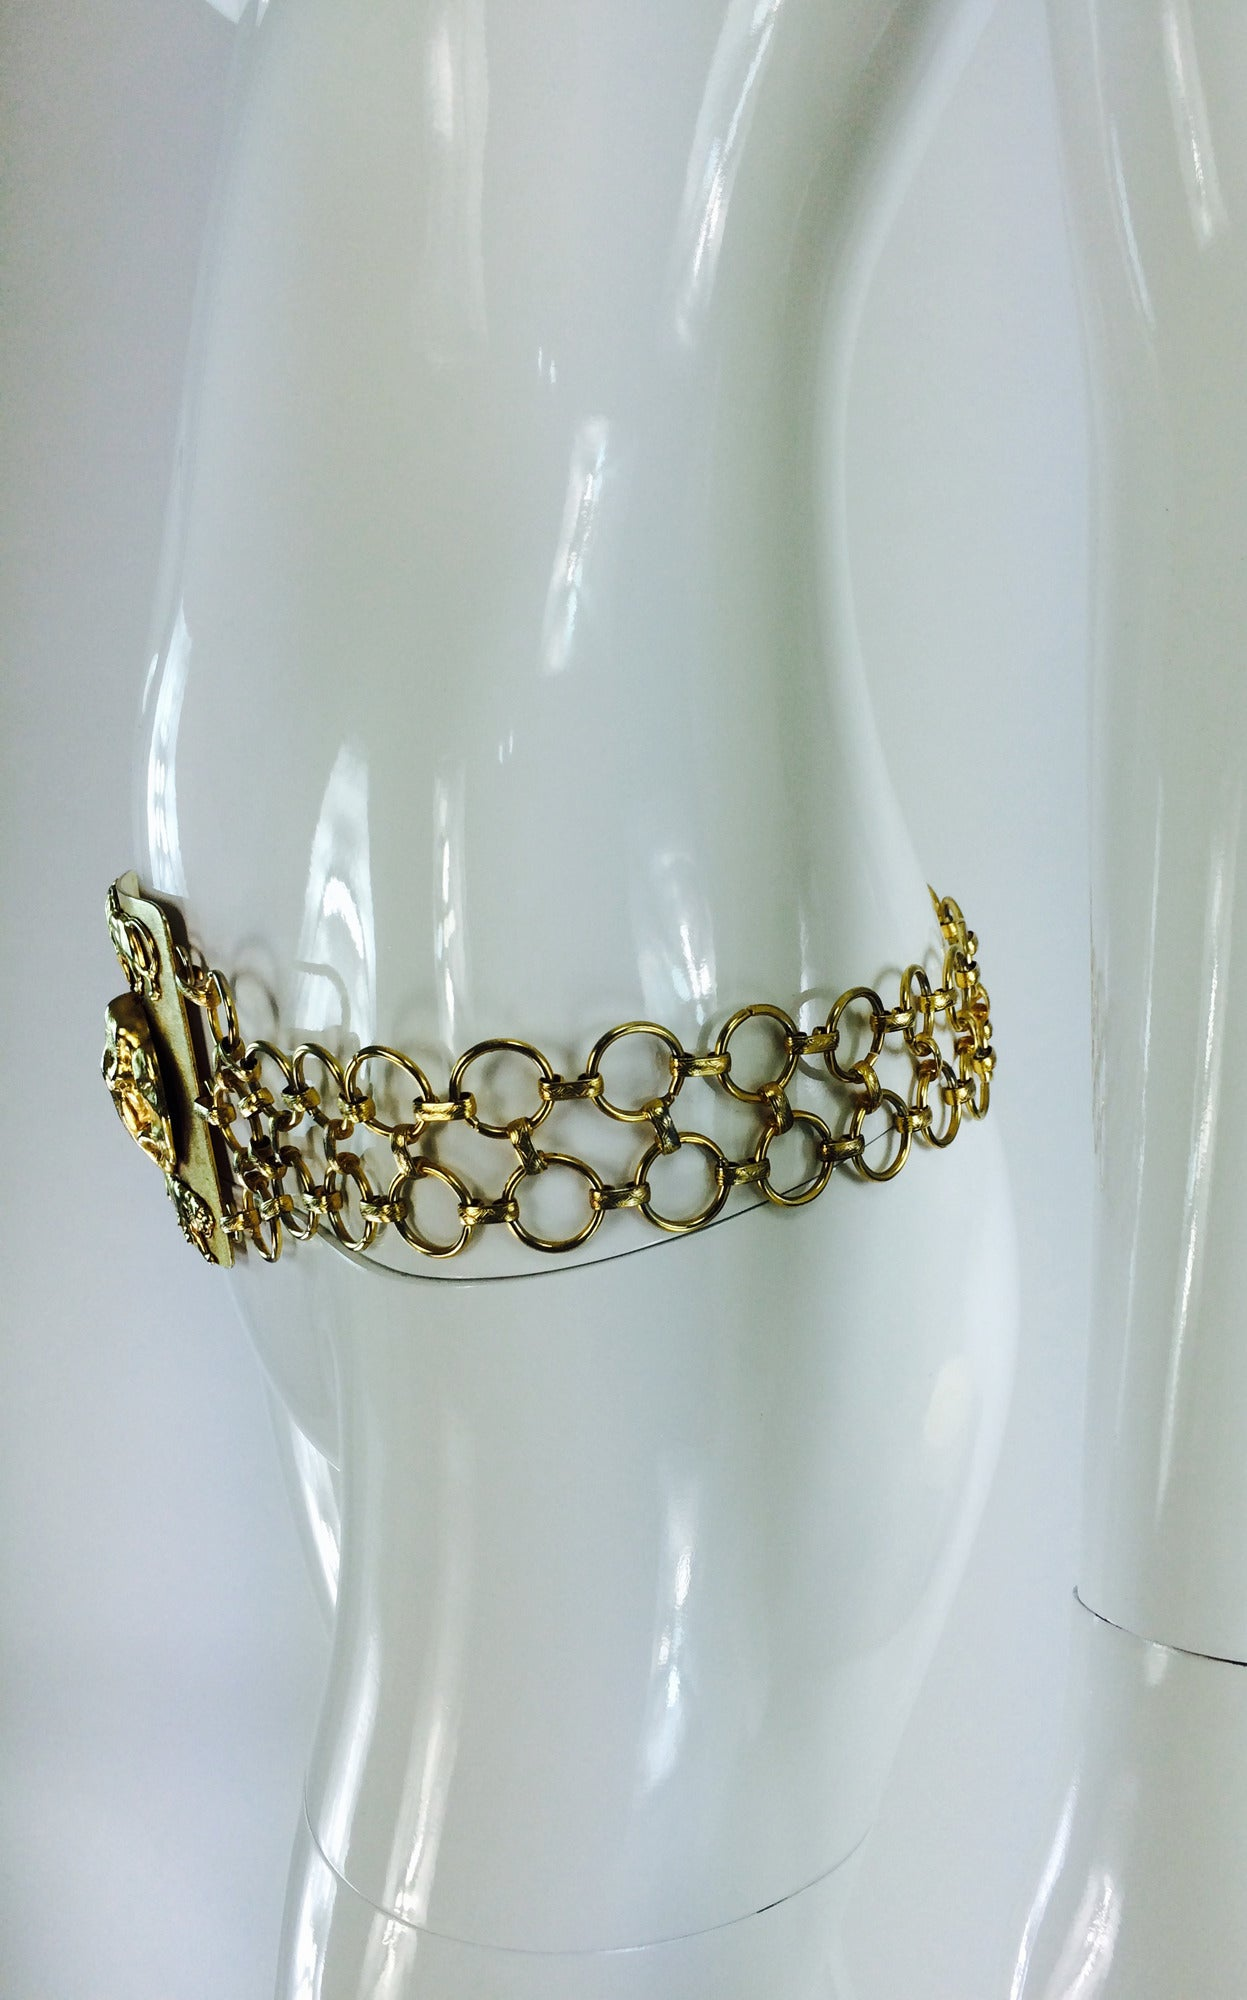 1970s Christian Dior jungle safari chain belt 7